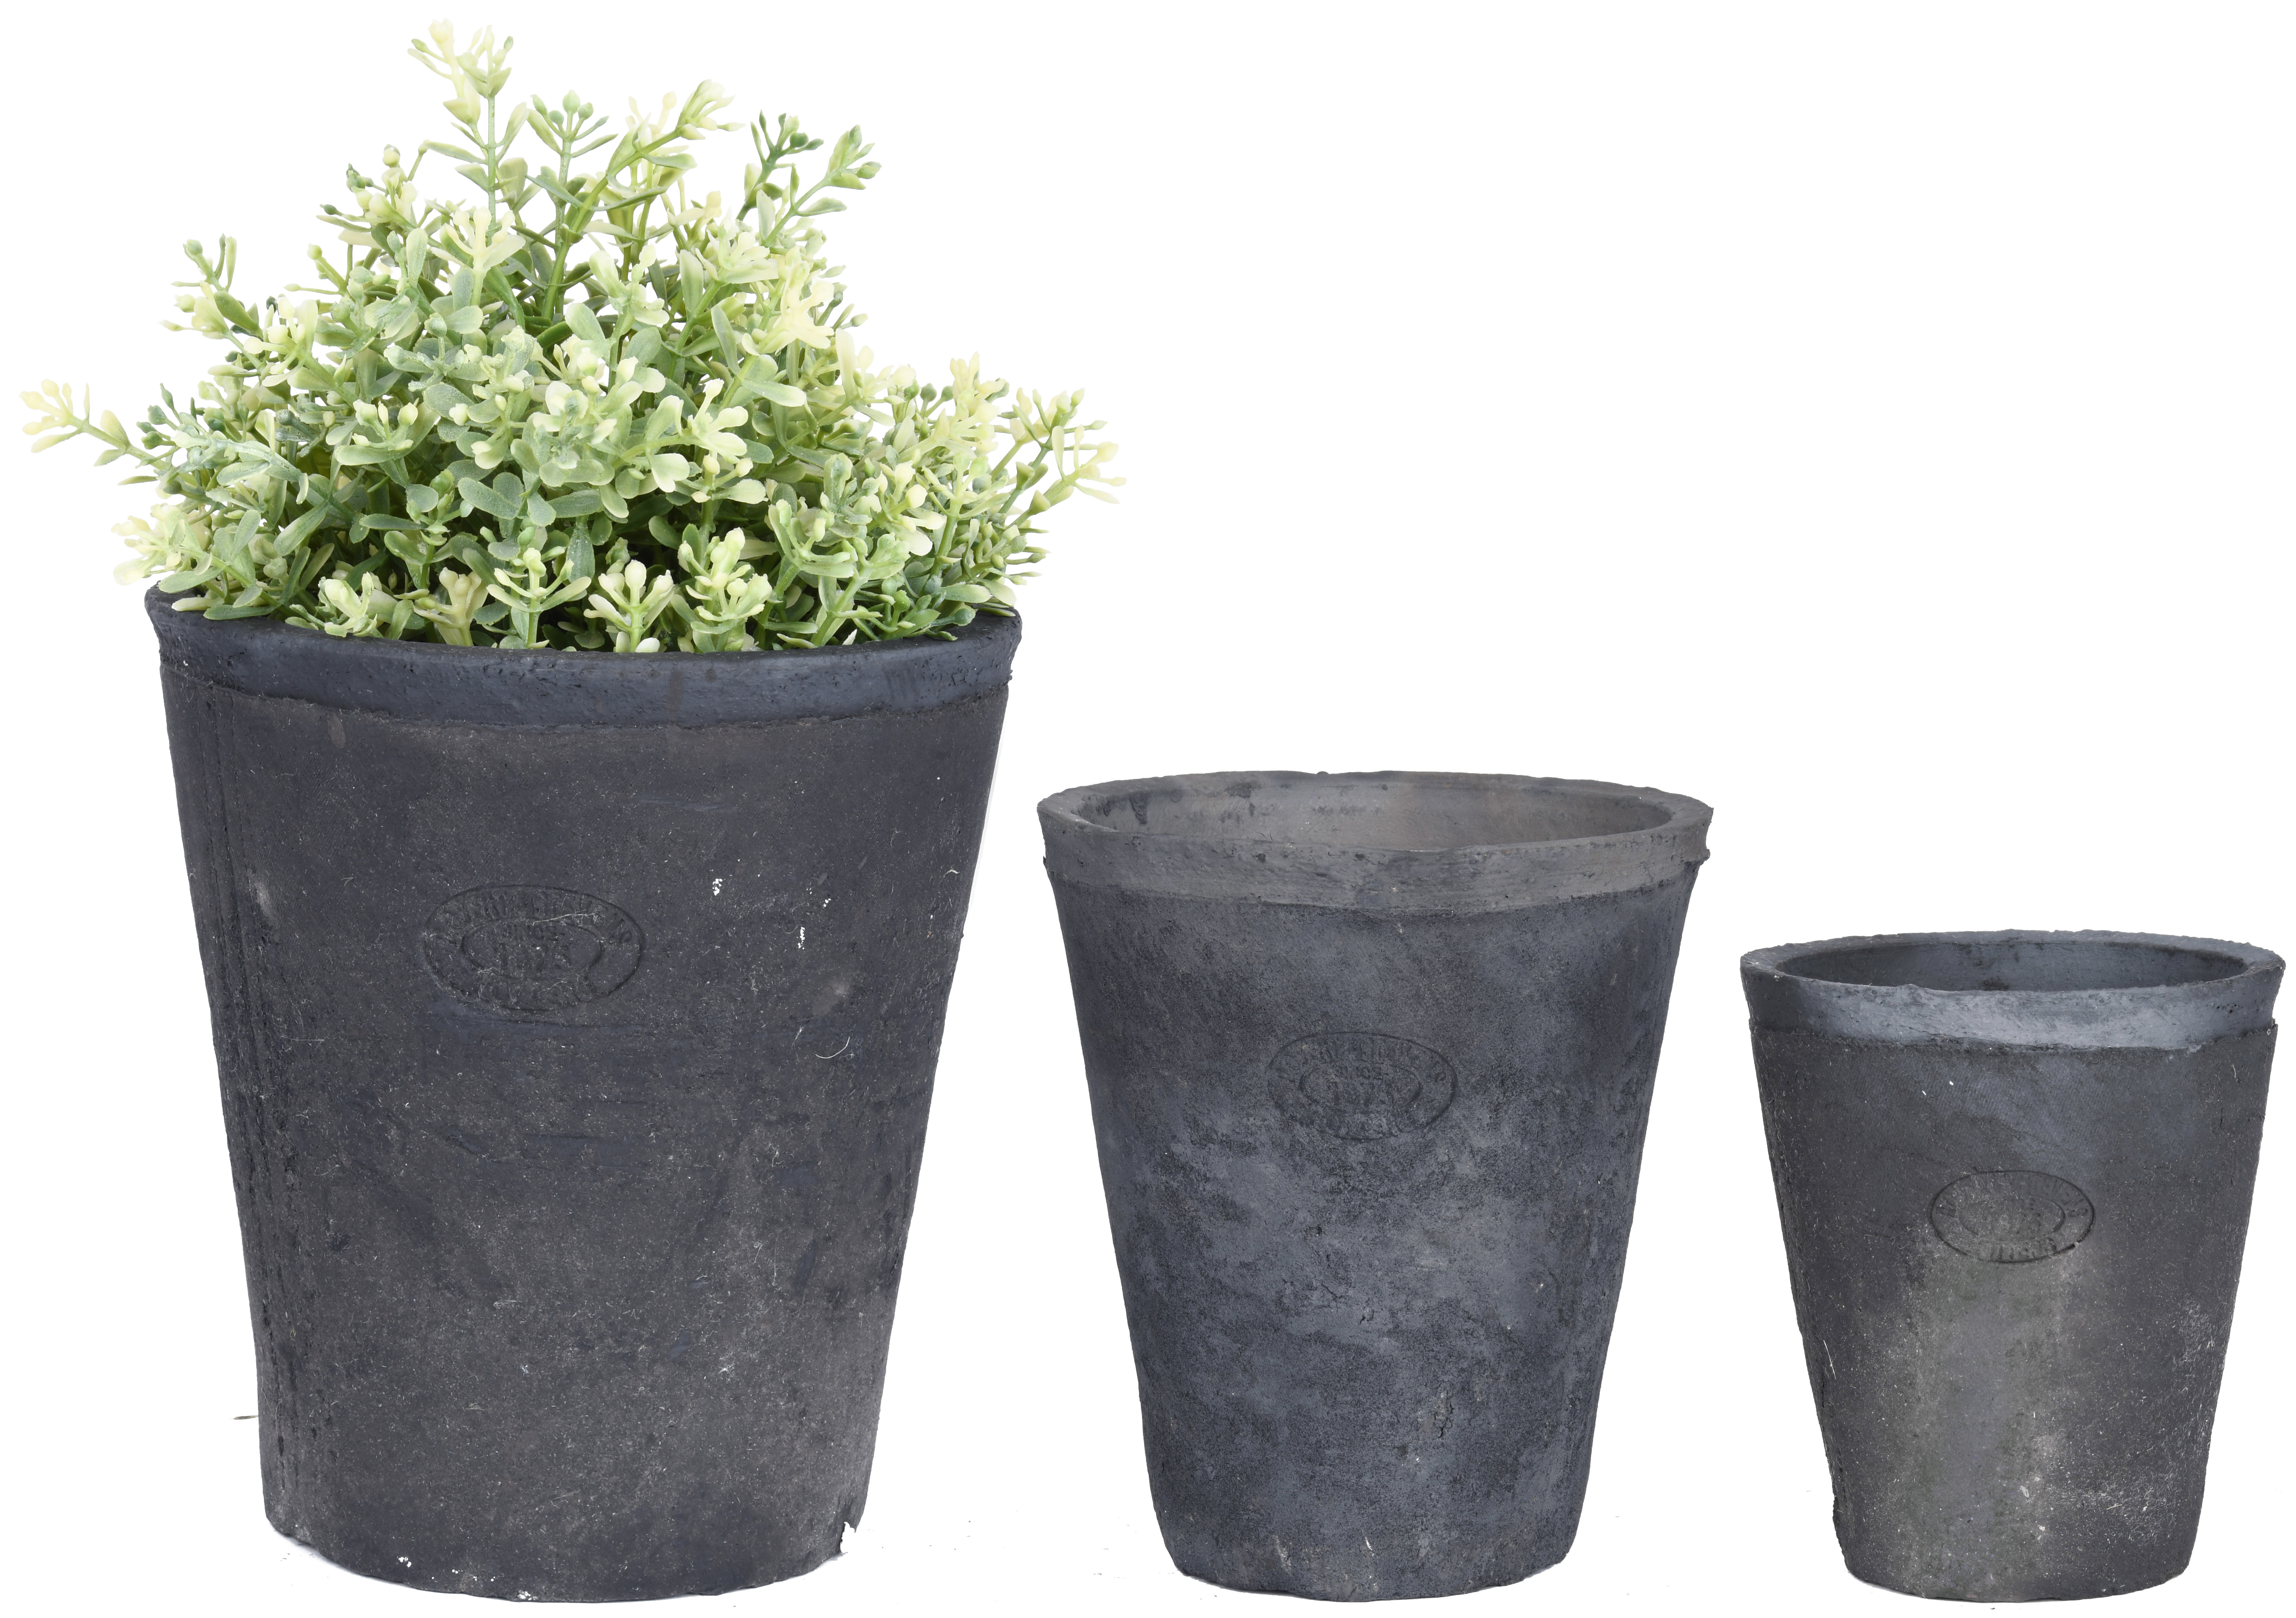 188 & Aged Terracotta Set of 3 Round Flower Pots Charcoal \u2013 Small